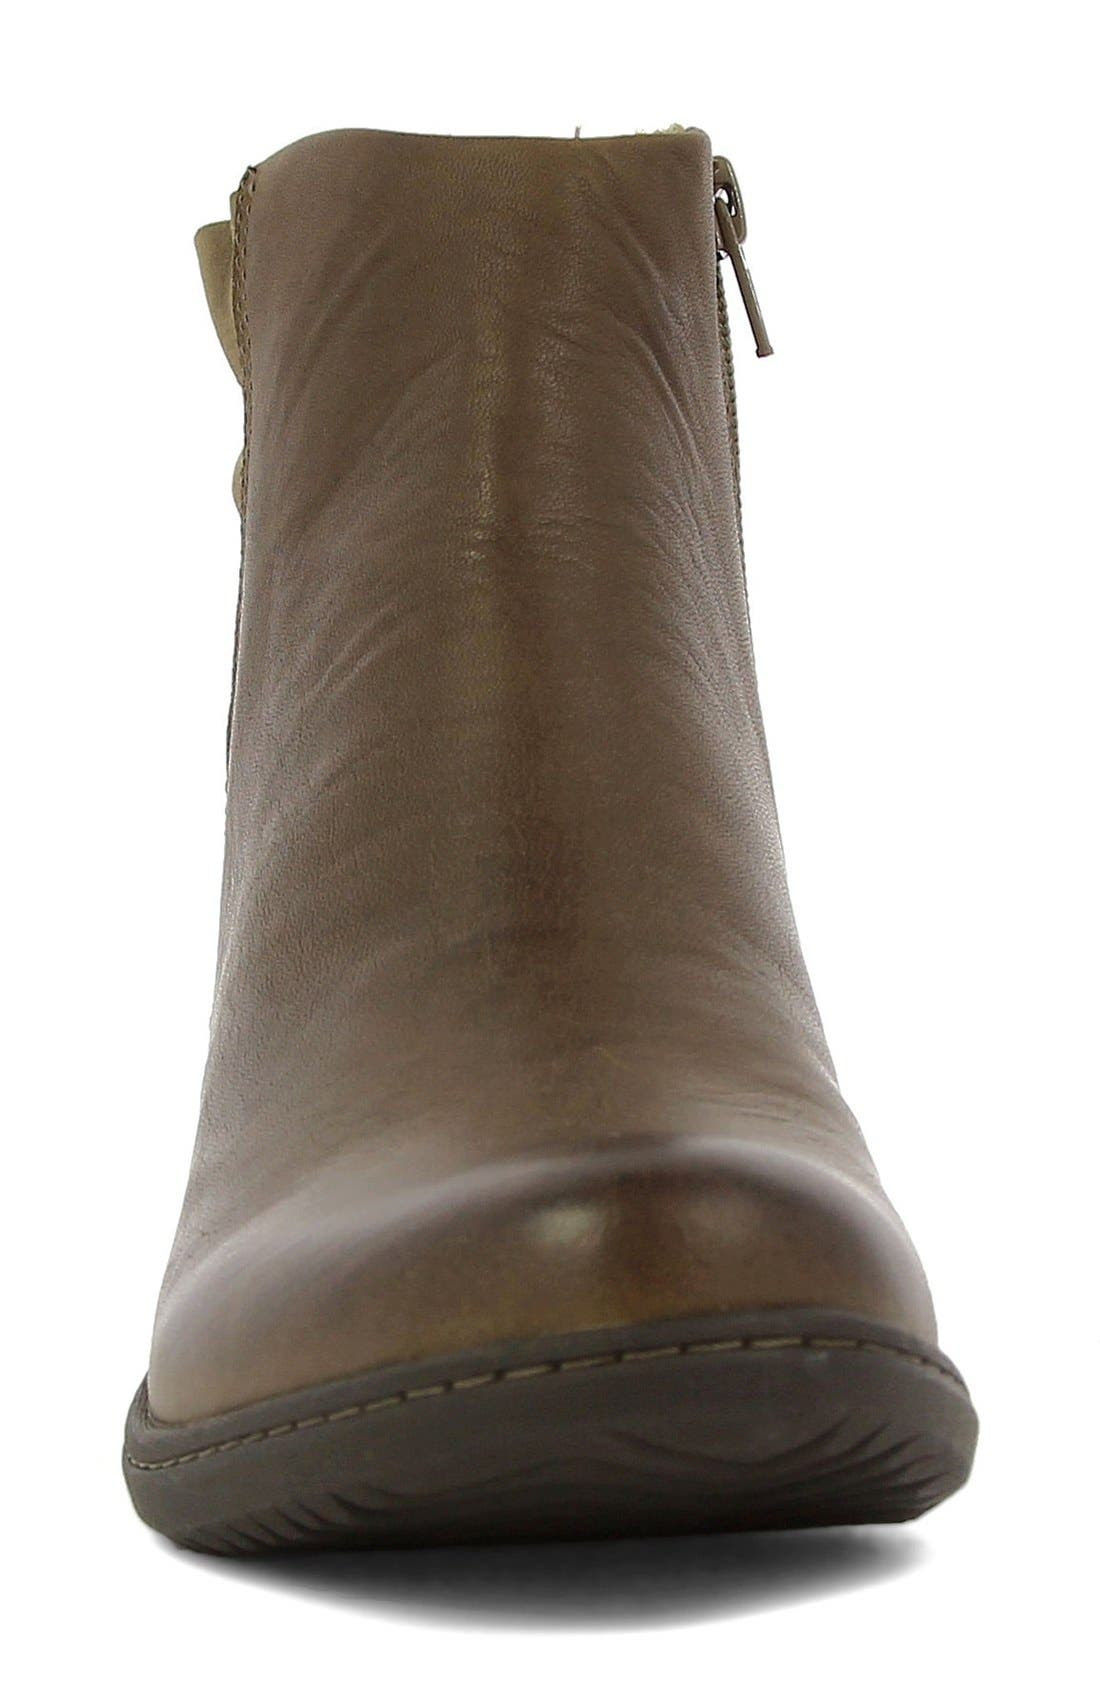 'Carly' Waterproof Short Boot,                             Alternate thumbnail 2, color,                             Hazelnut Leather